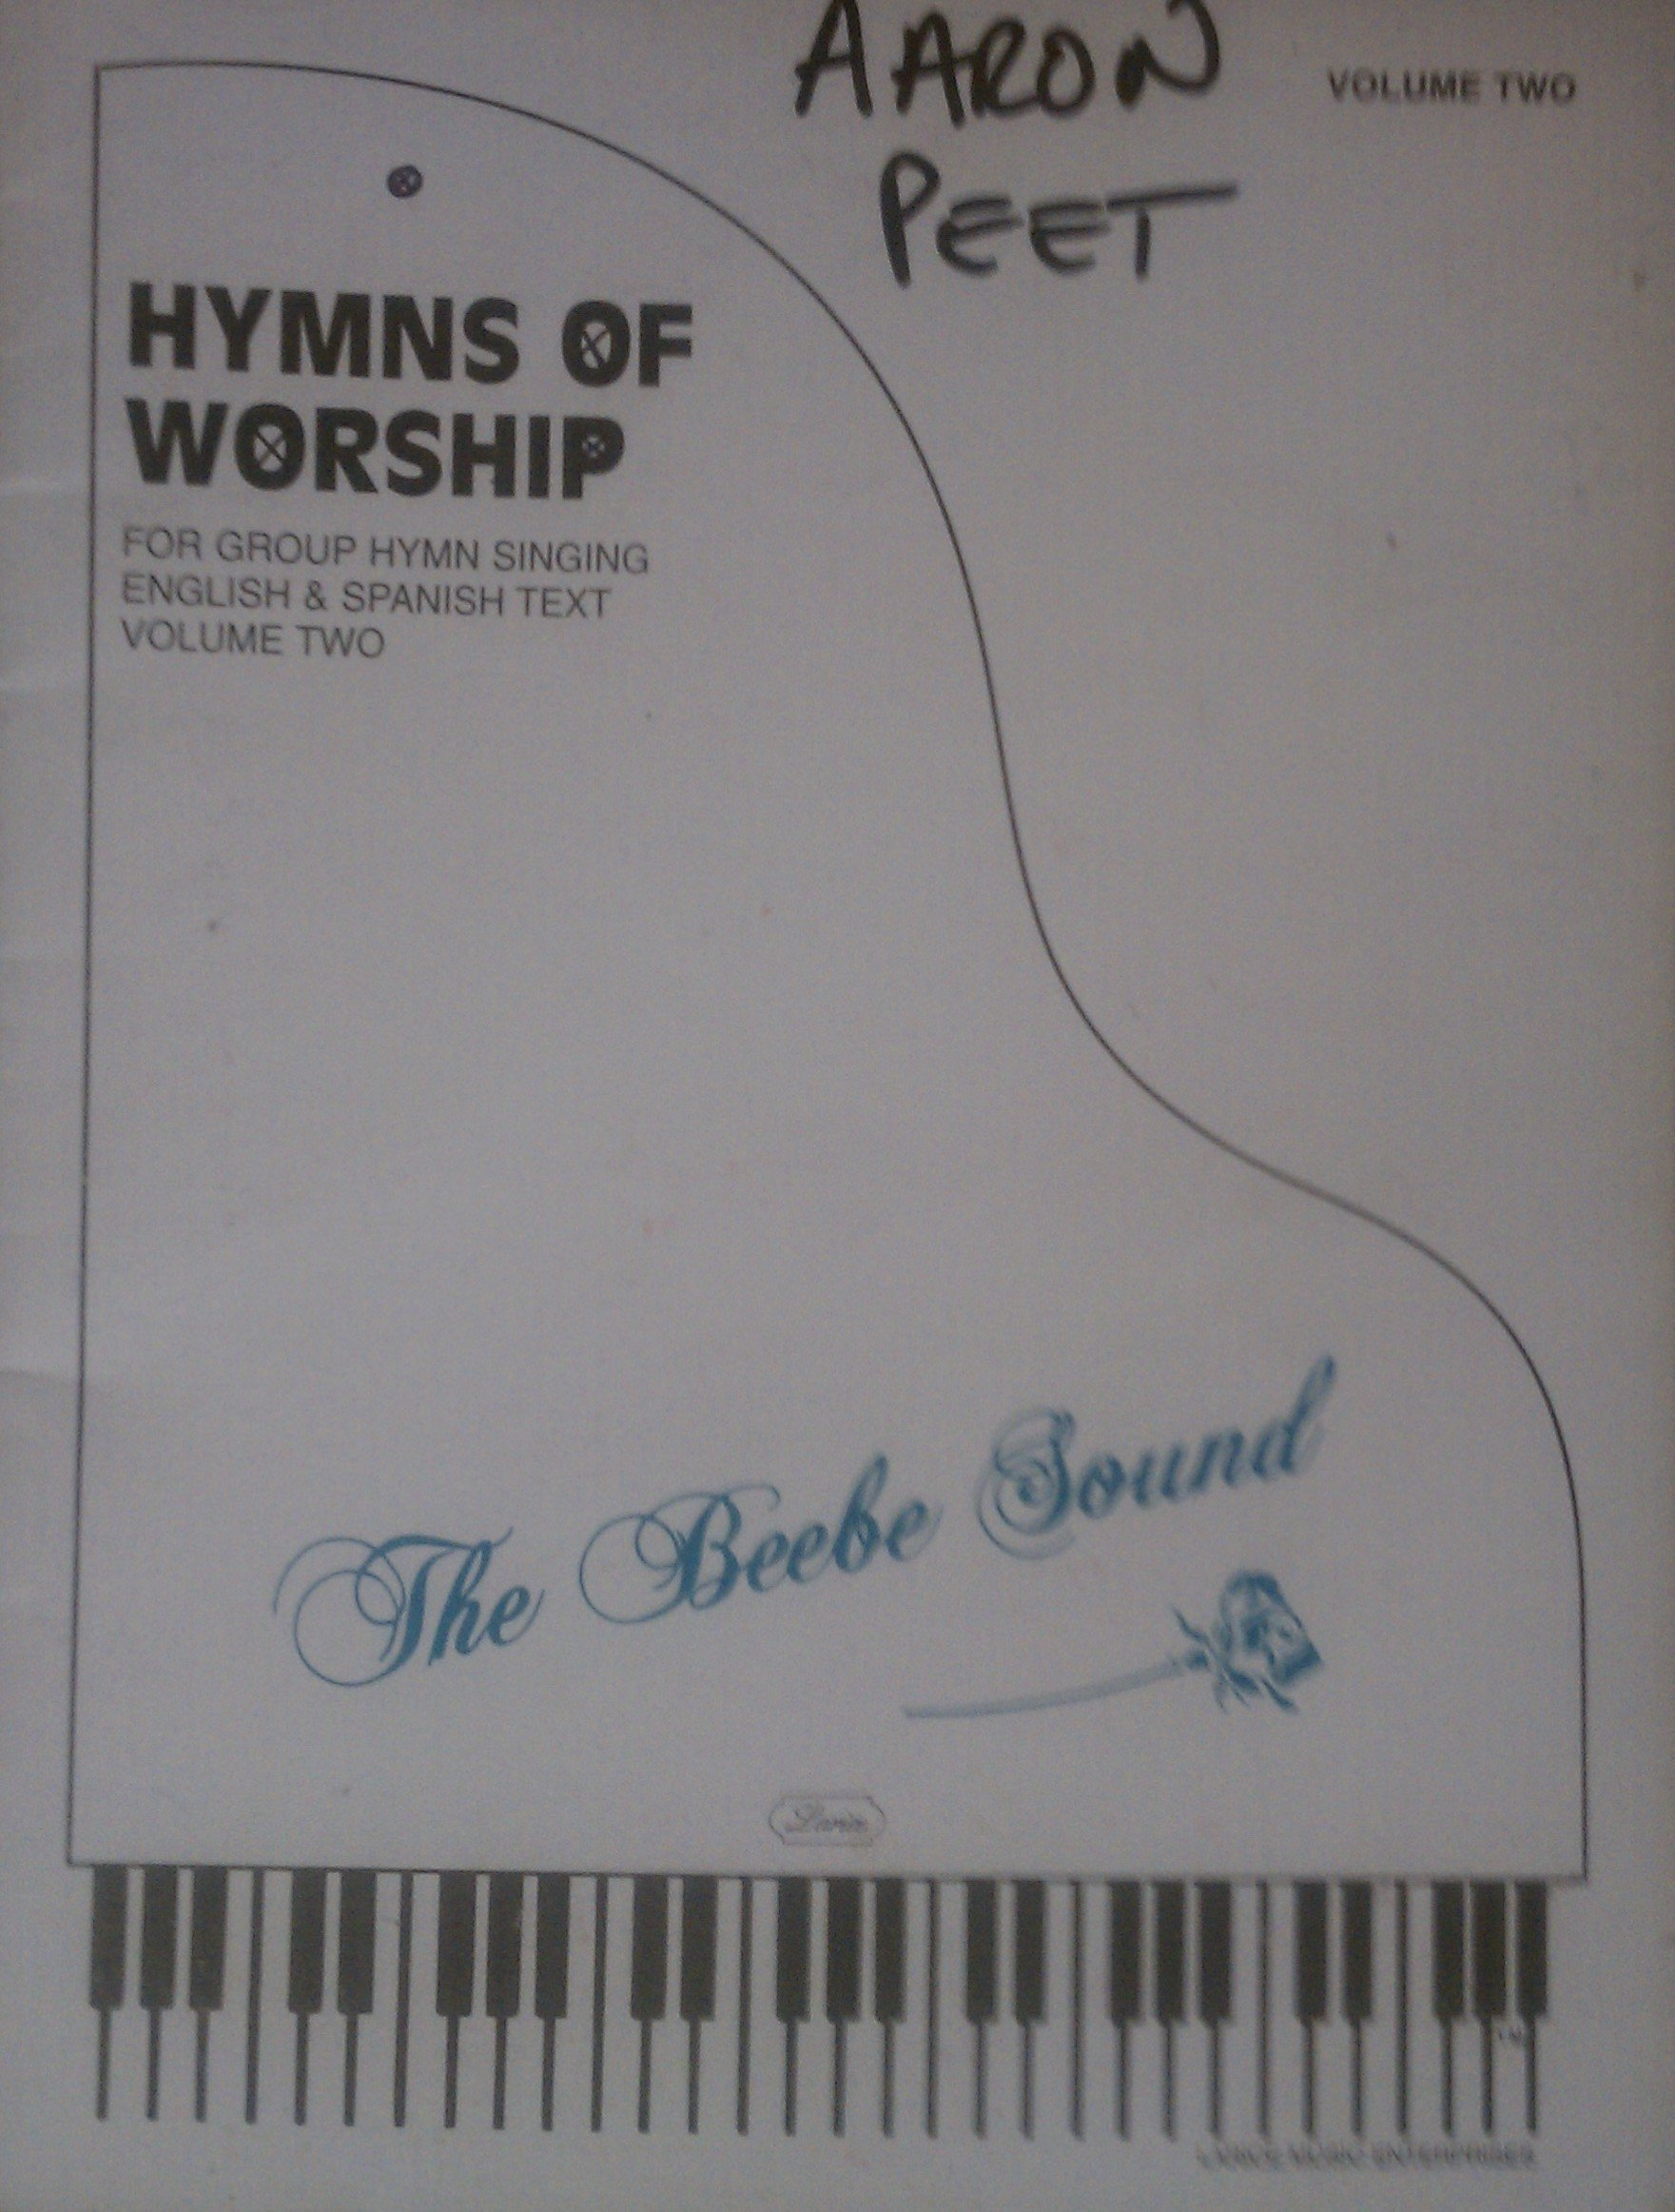 The Beebe Sound: Hymns of Worship Volume 2: Amazon com: Books